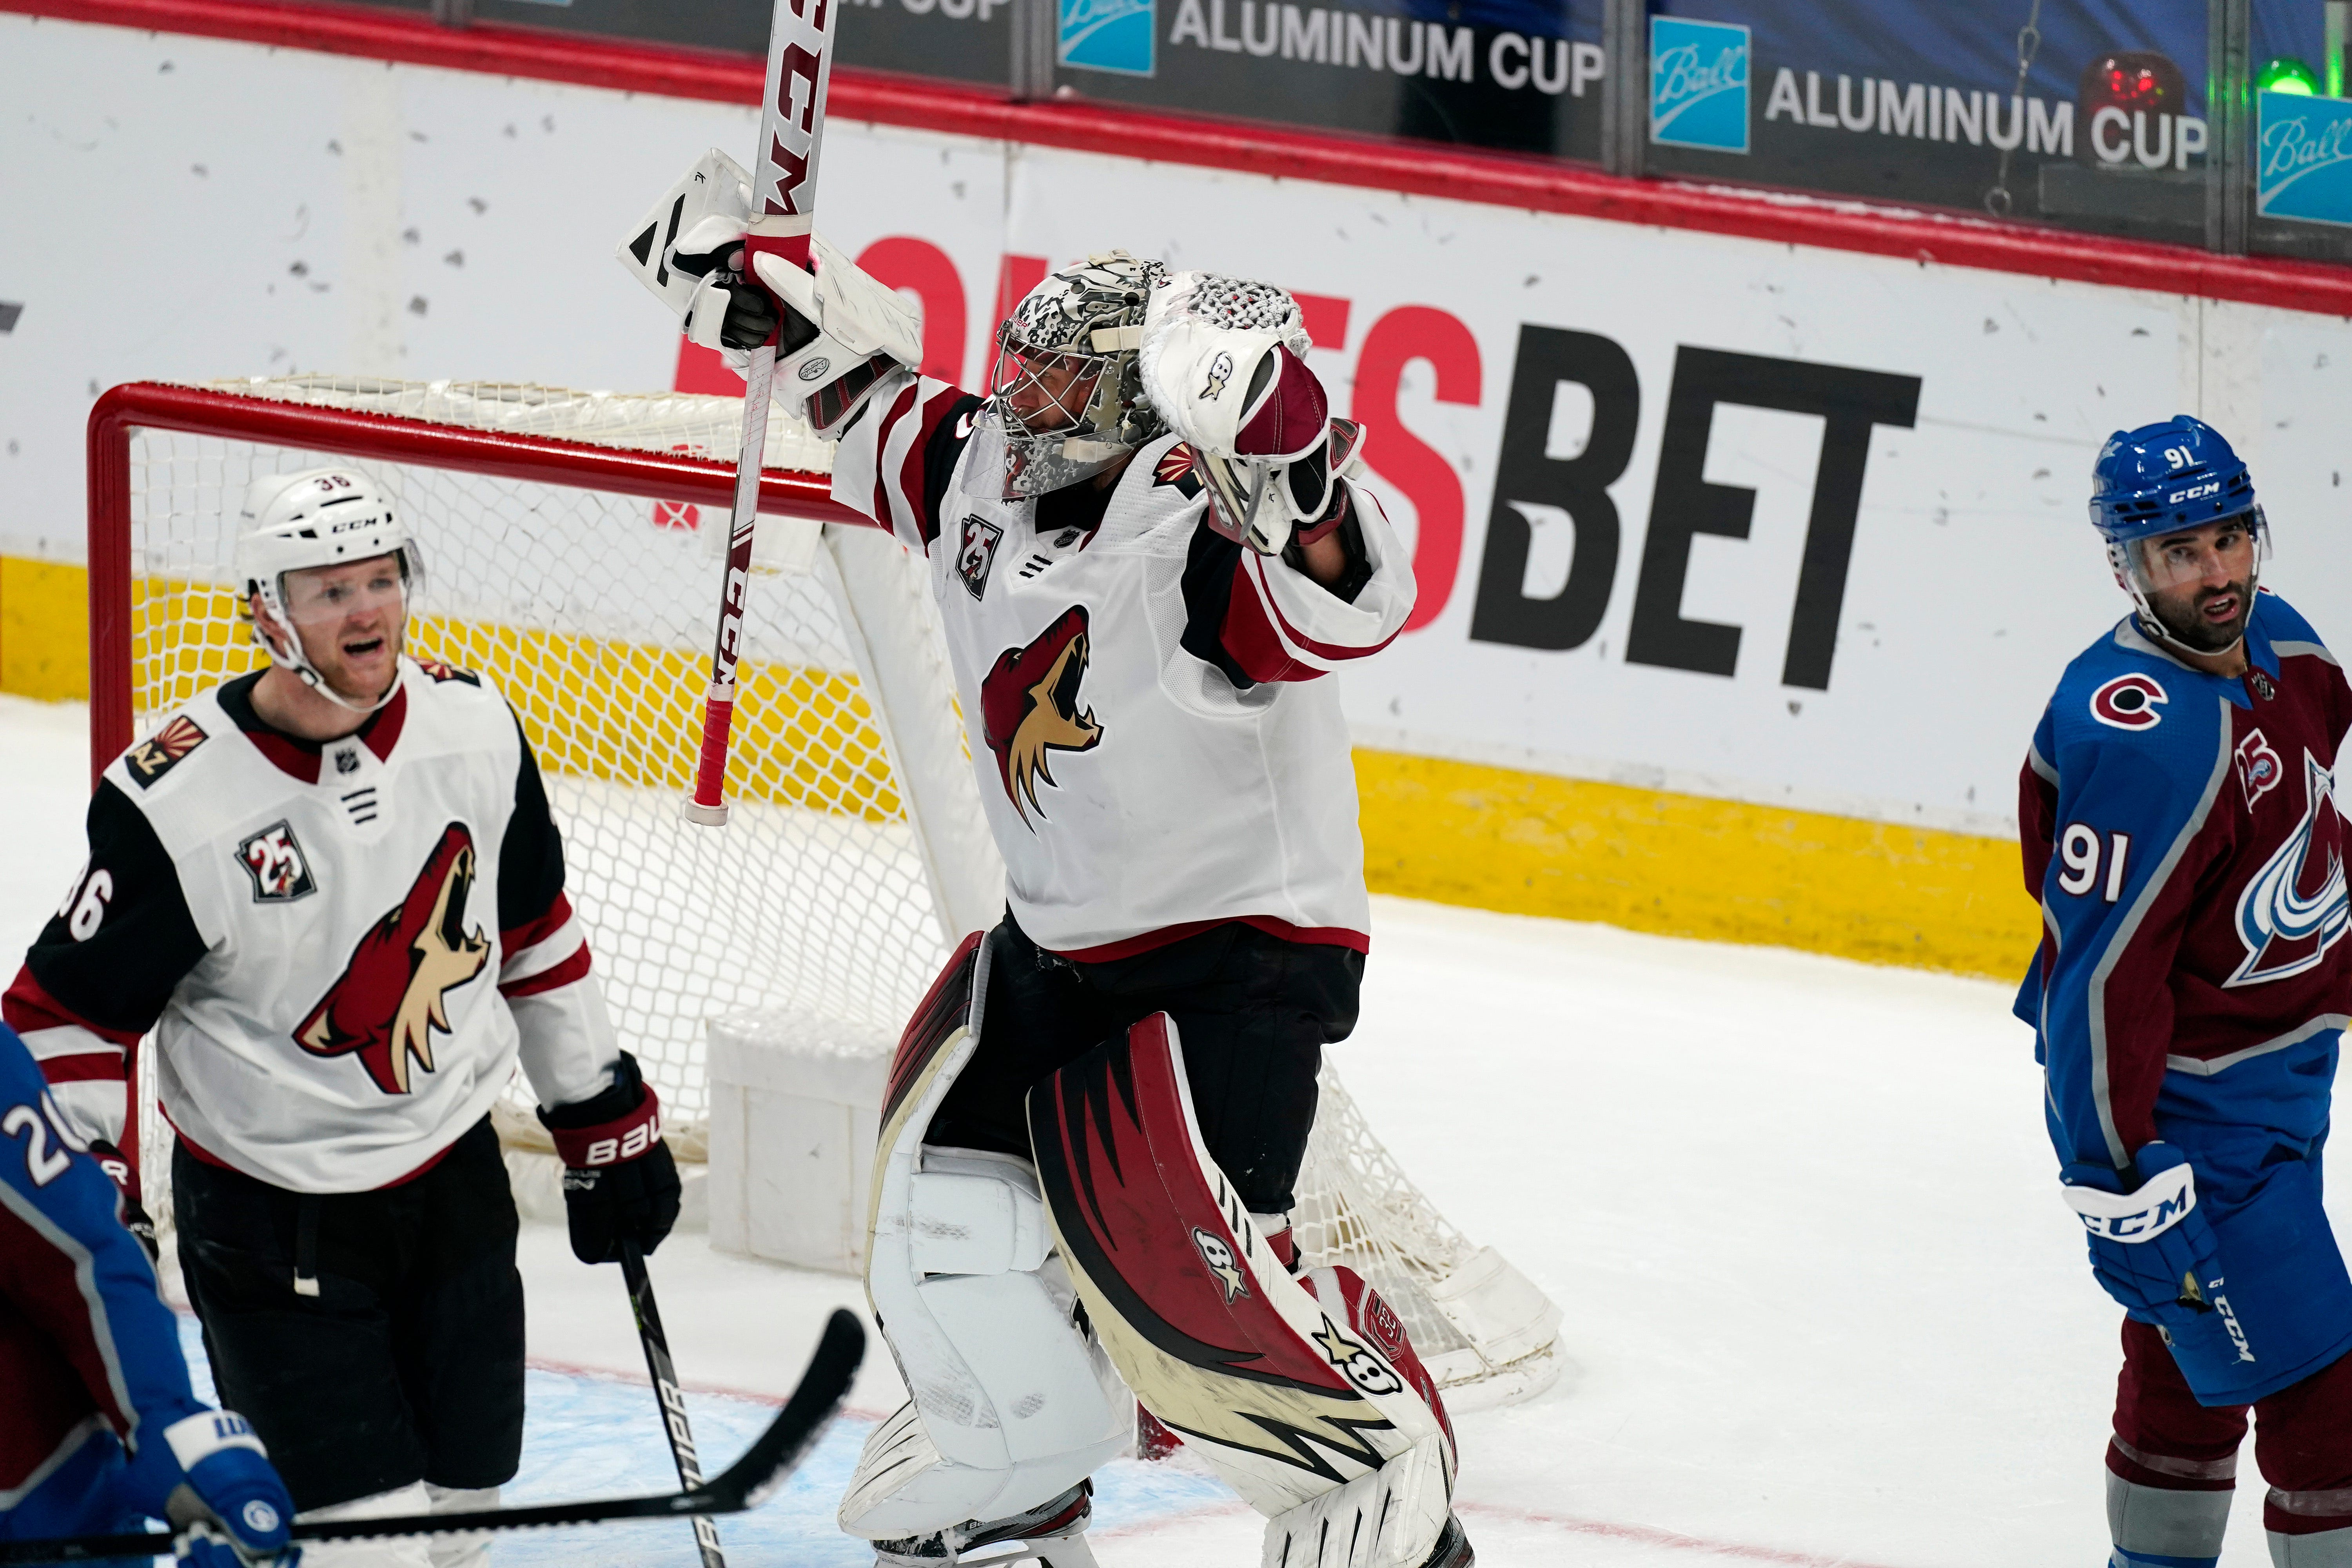 Coyotes goalie Antti Raanta was a little emotional in discussing his big win off the bench